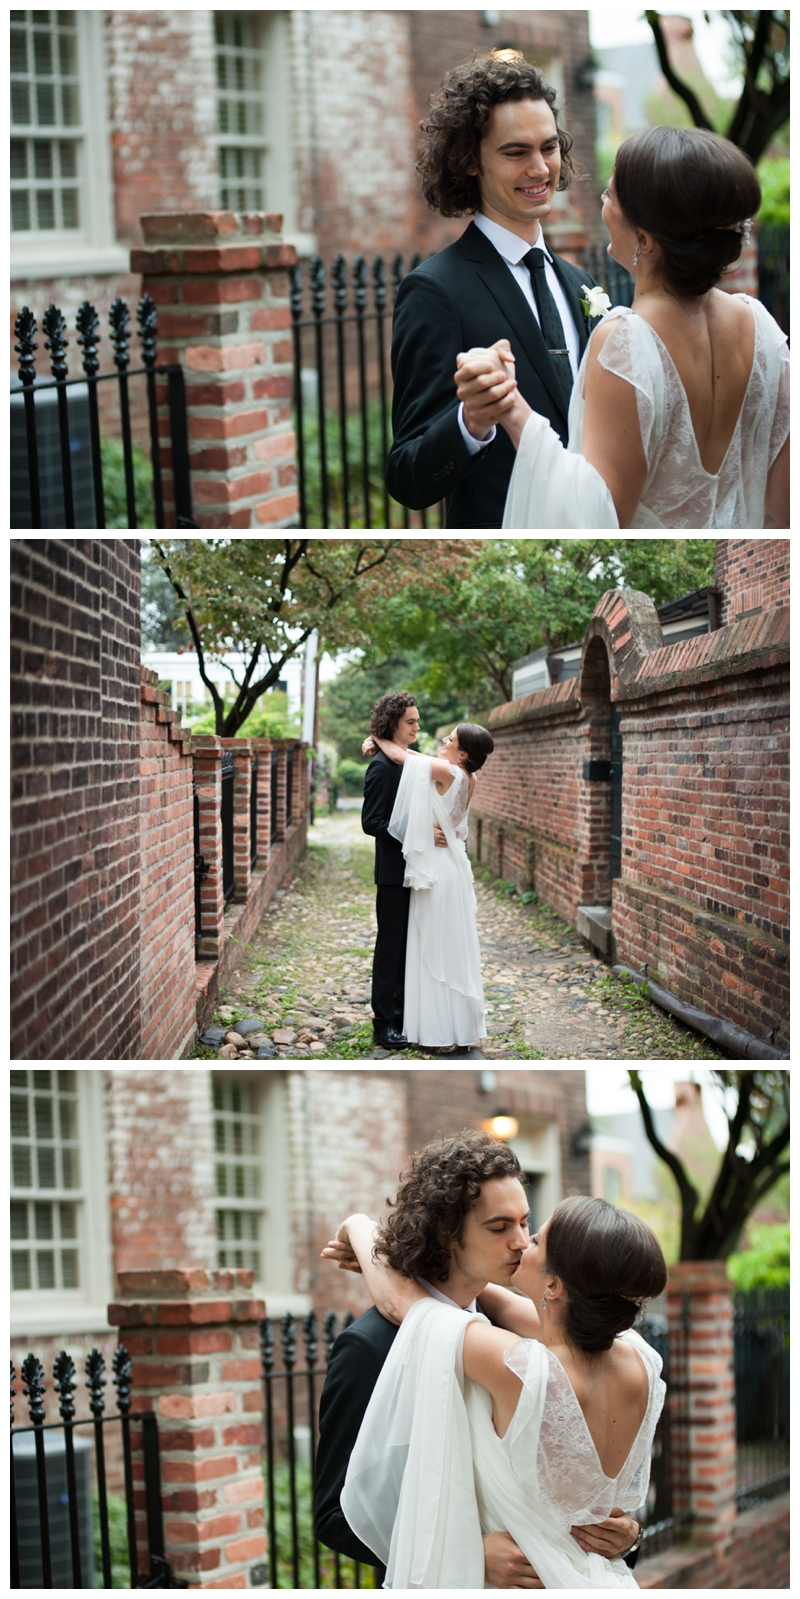 Wedding in Old Town Alexandria Virginia at the Torpedo Factory Art Center by Rachael Foster Photography_0036.jpg